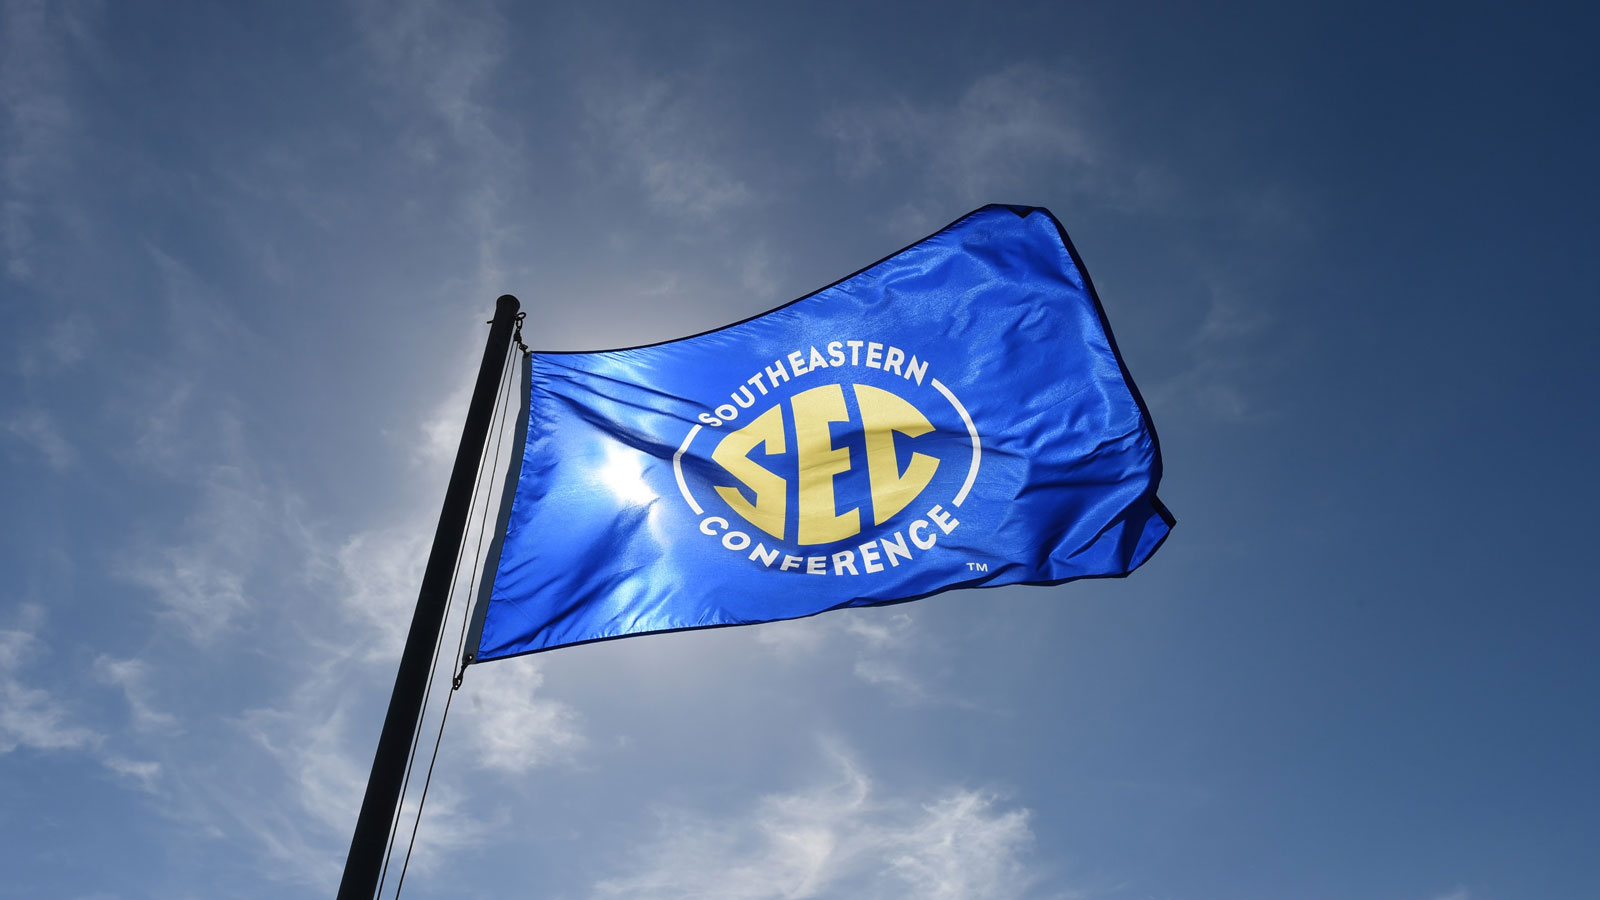 SEC Announces Expansion of Academic Initiative